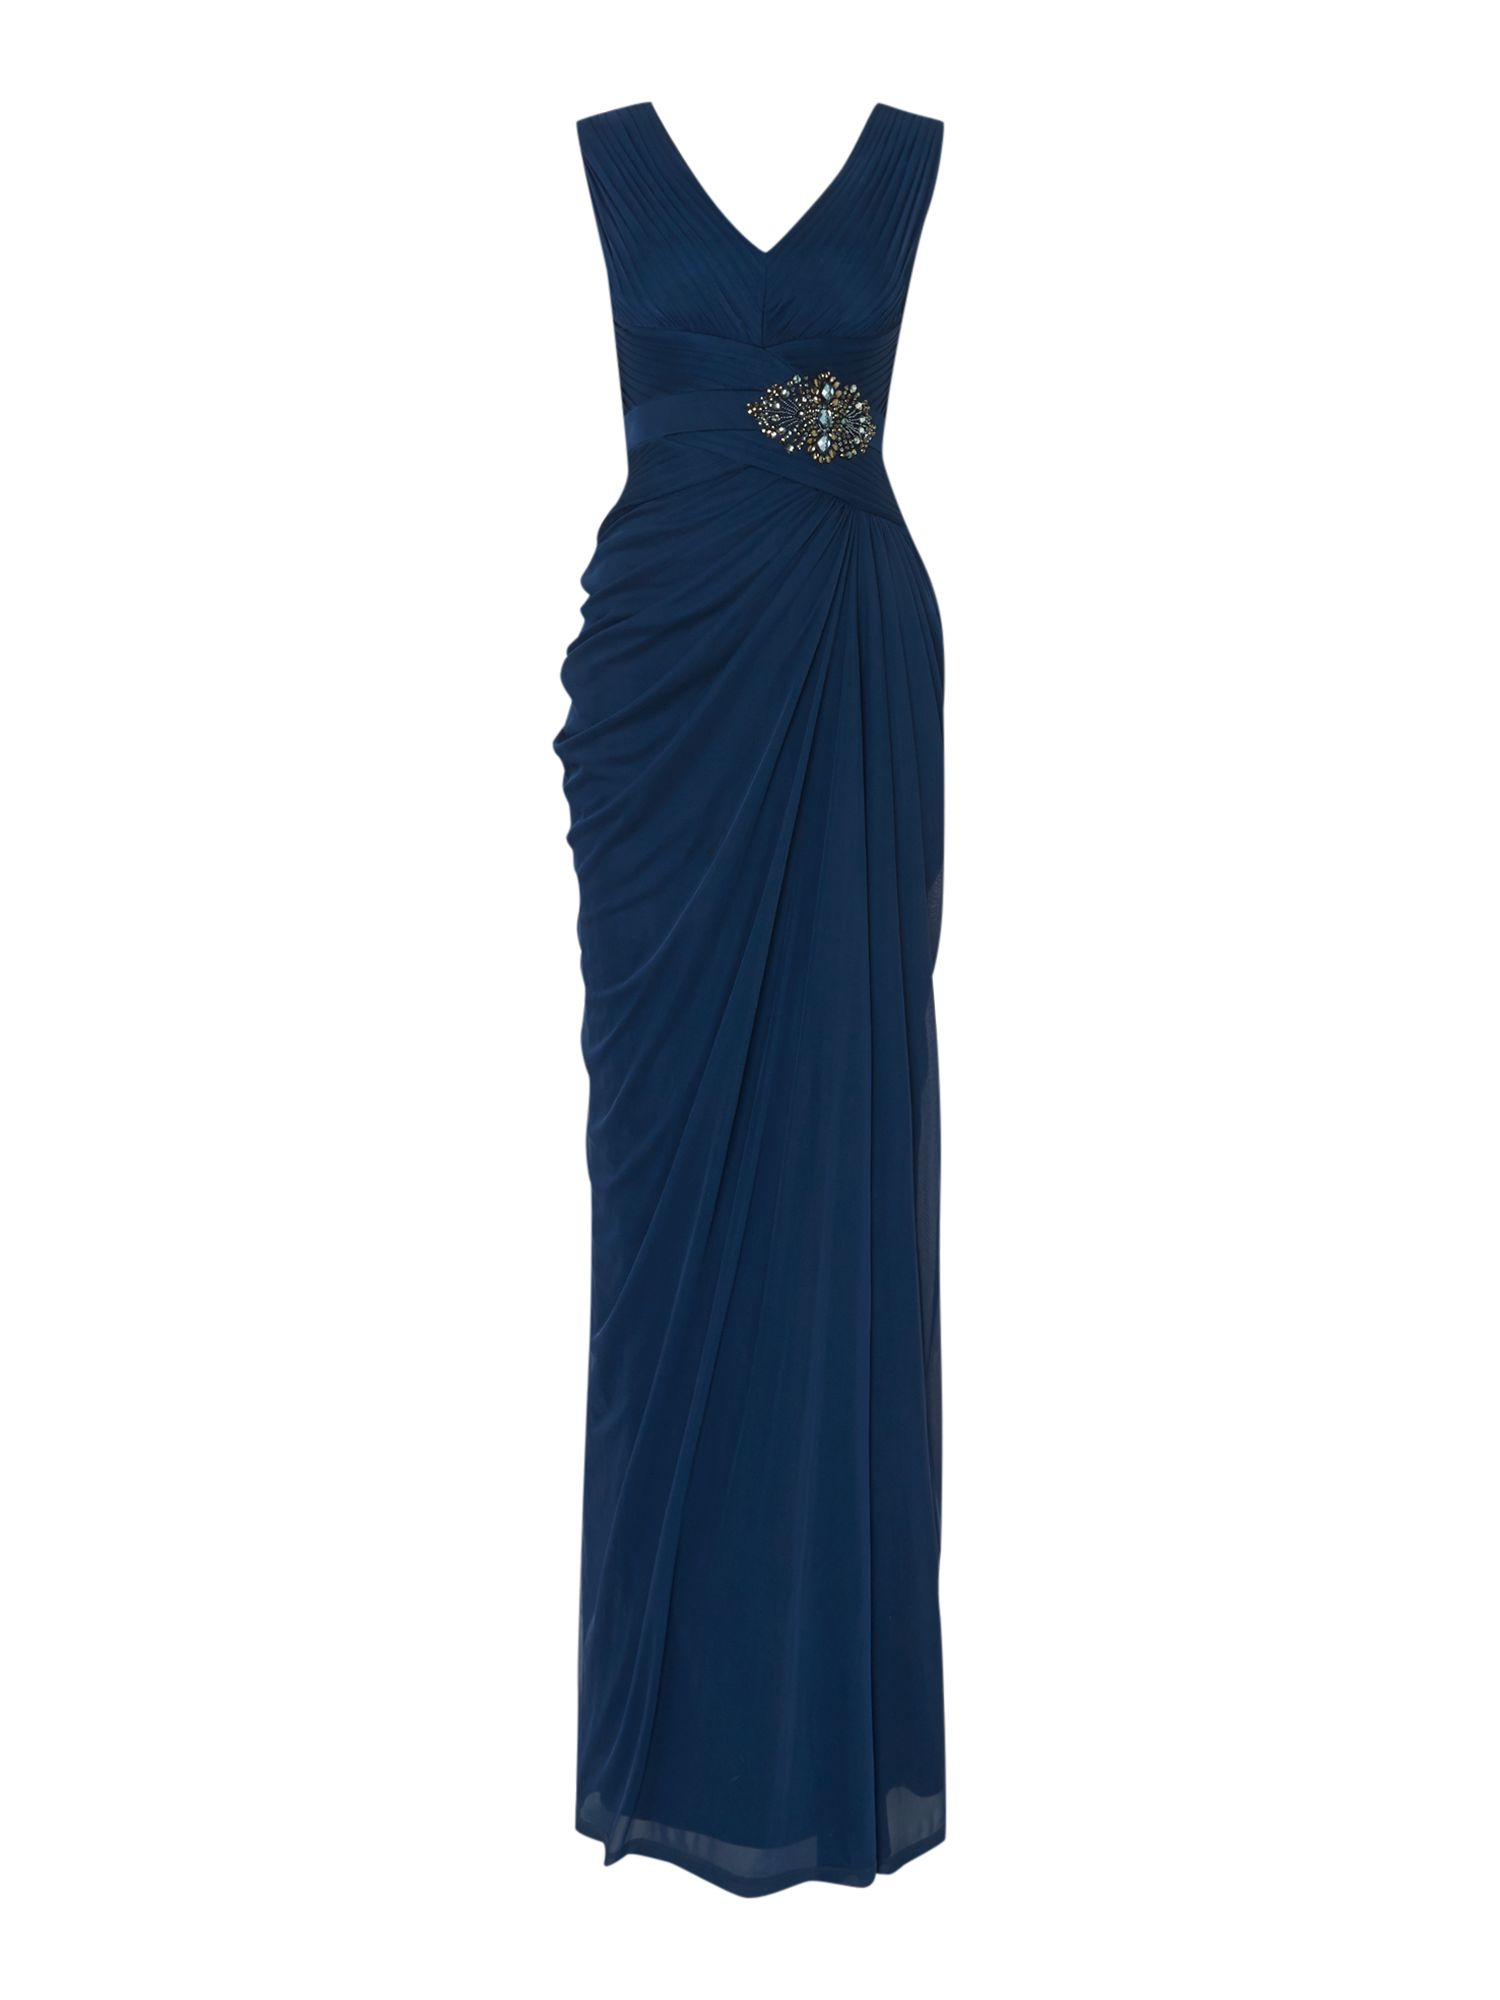 Adrianna Papell Stretch tulle dress with waist detail Navy £119.00 AT vintagedancer.com